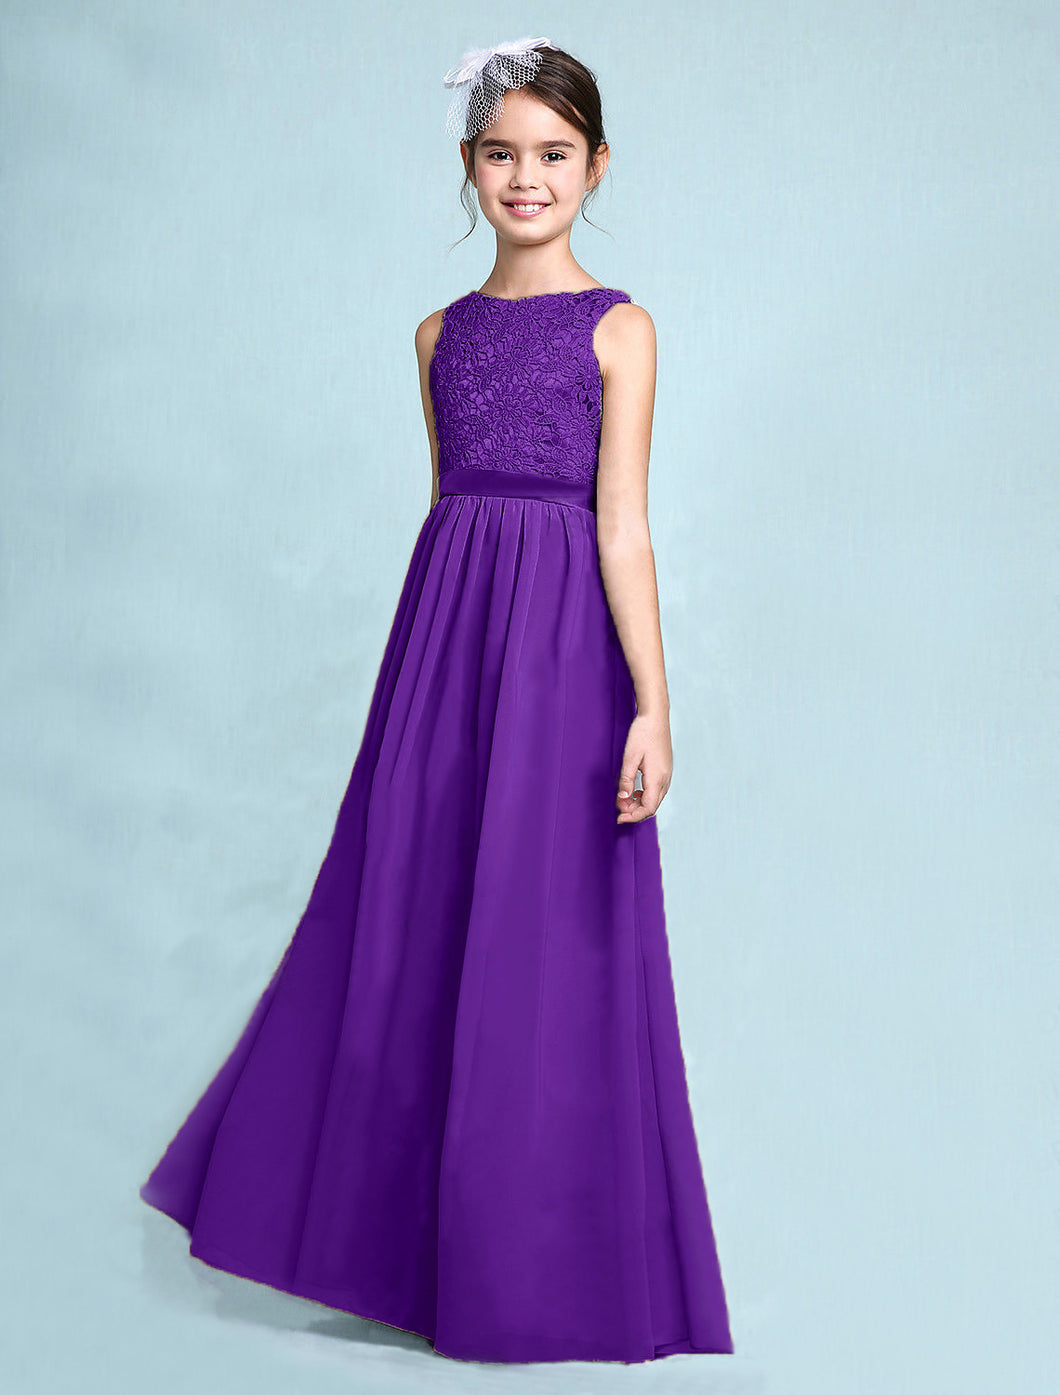 Melody Cadbury Purple lace chiffon long sleeveless junior bridesmaid flowergirl dress loulous bridal boutique uk